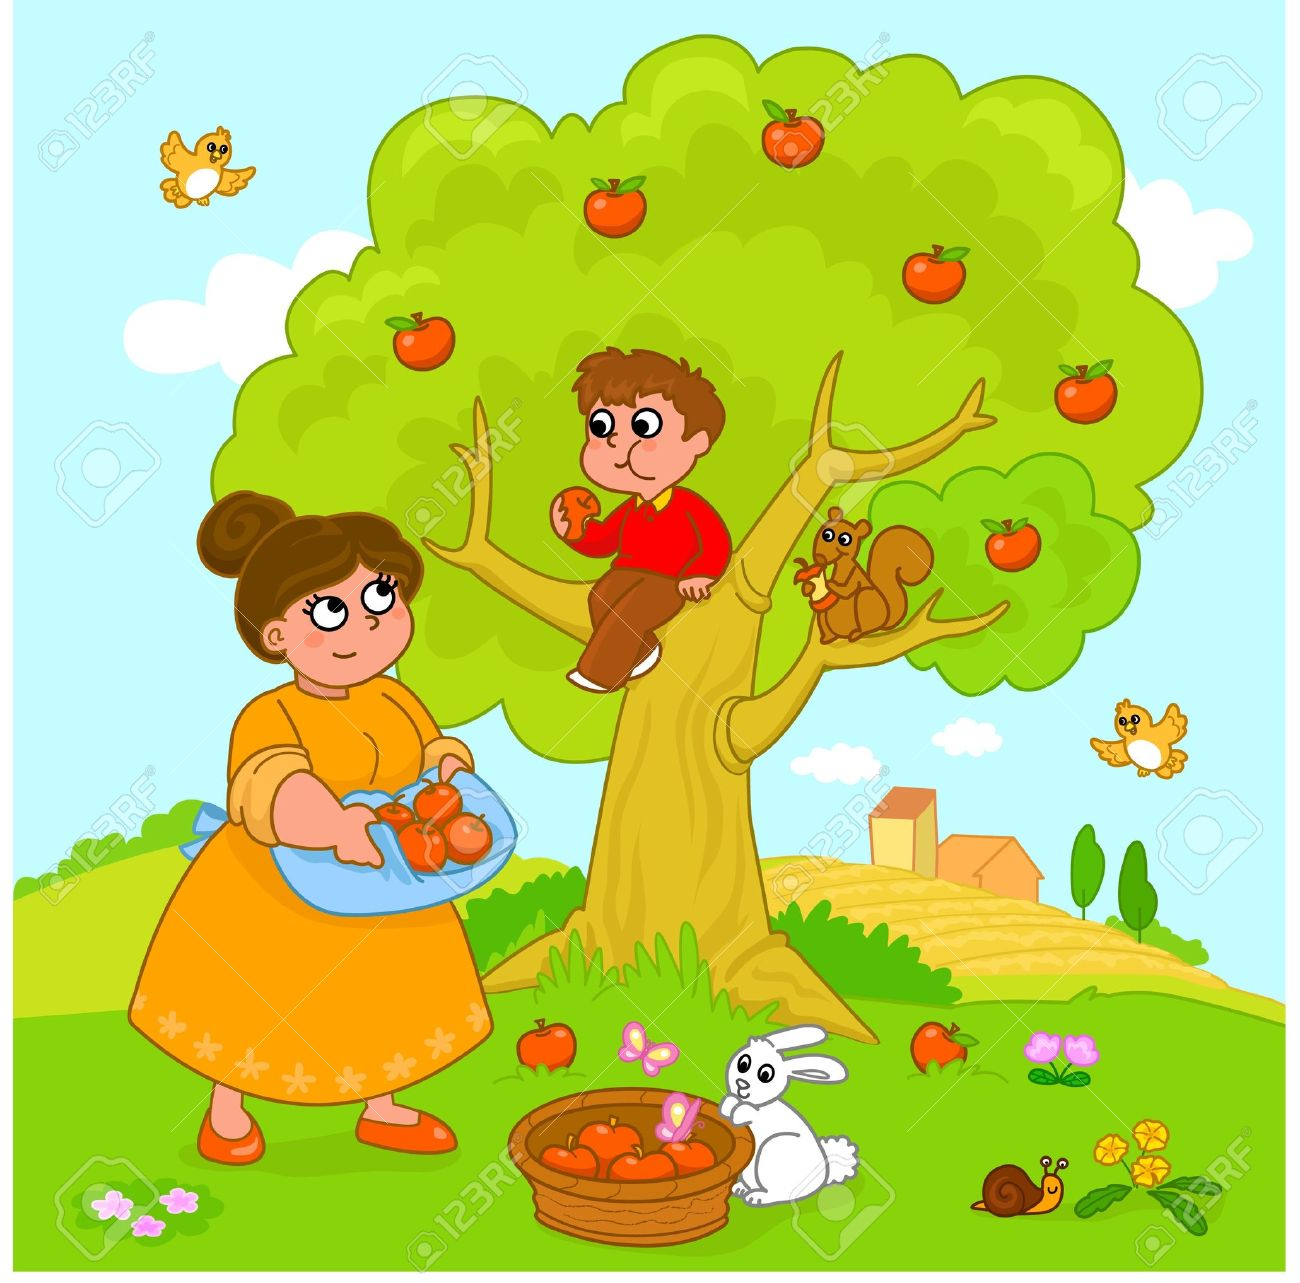 C:\Users\Константин\Desktop\9707986-Mother-and-child-picking-apples-Funny-cartoon-illustration--Stock-Vector.jpg